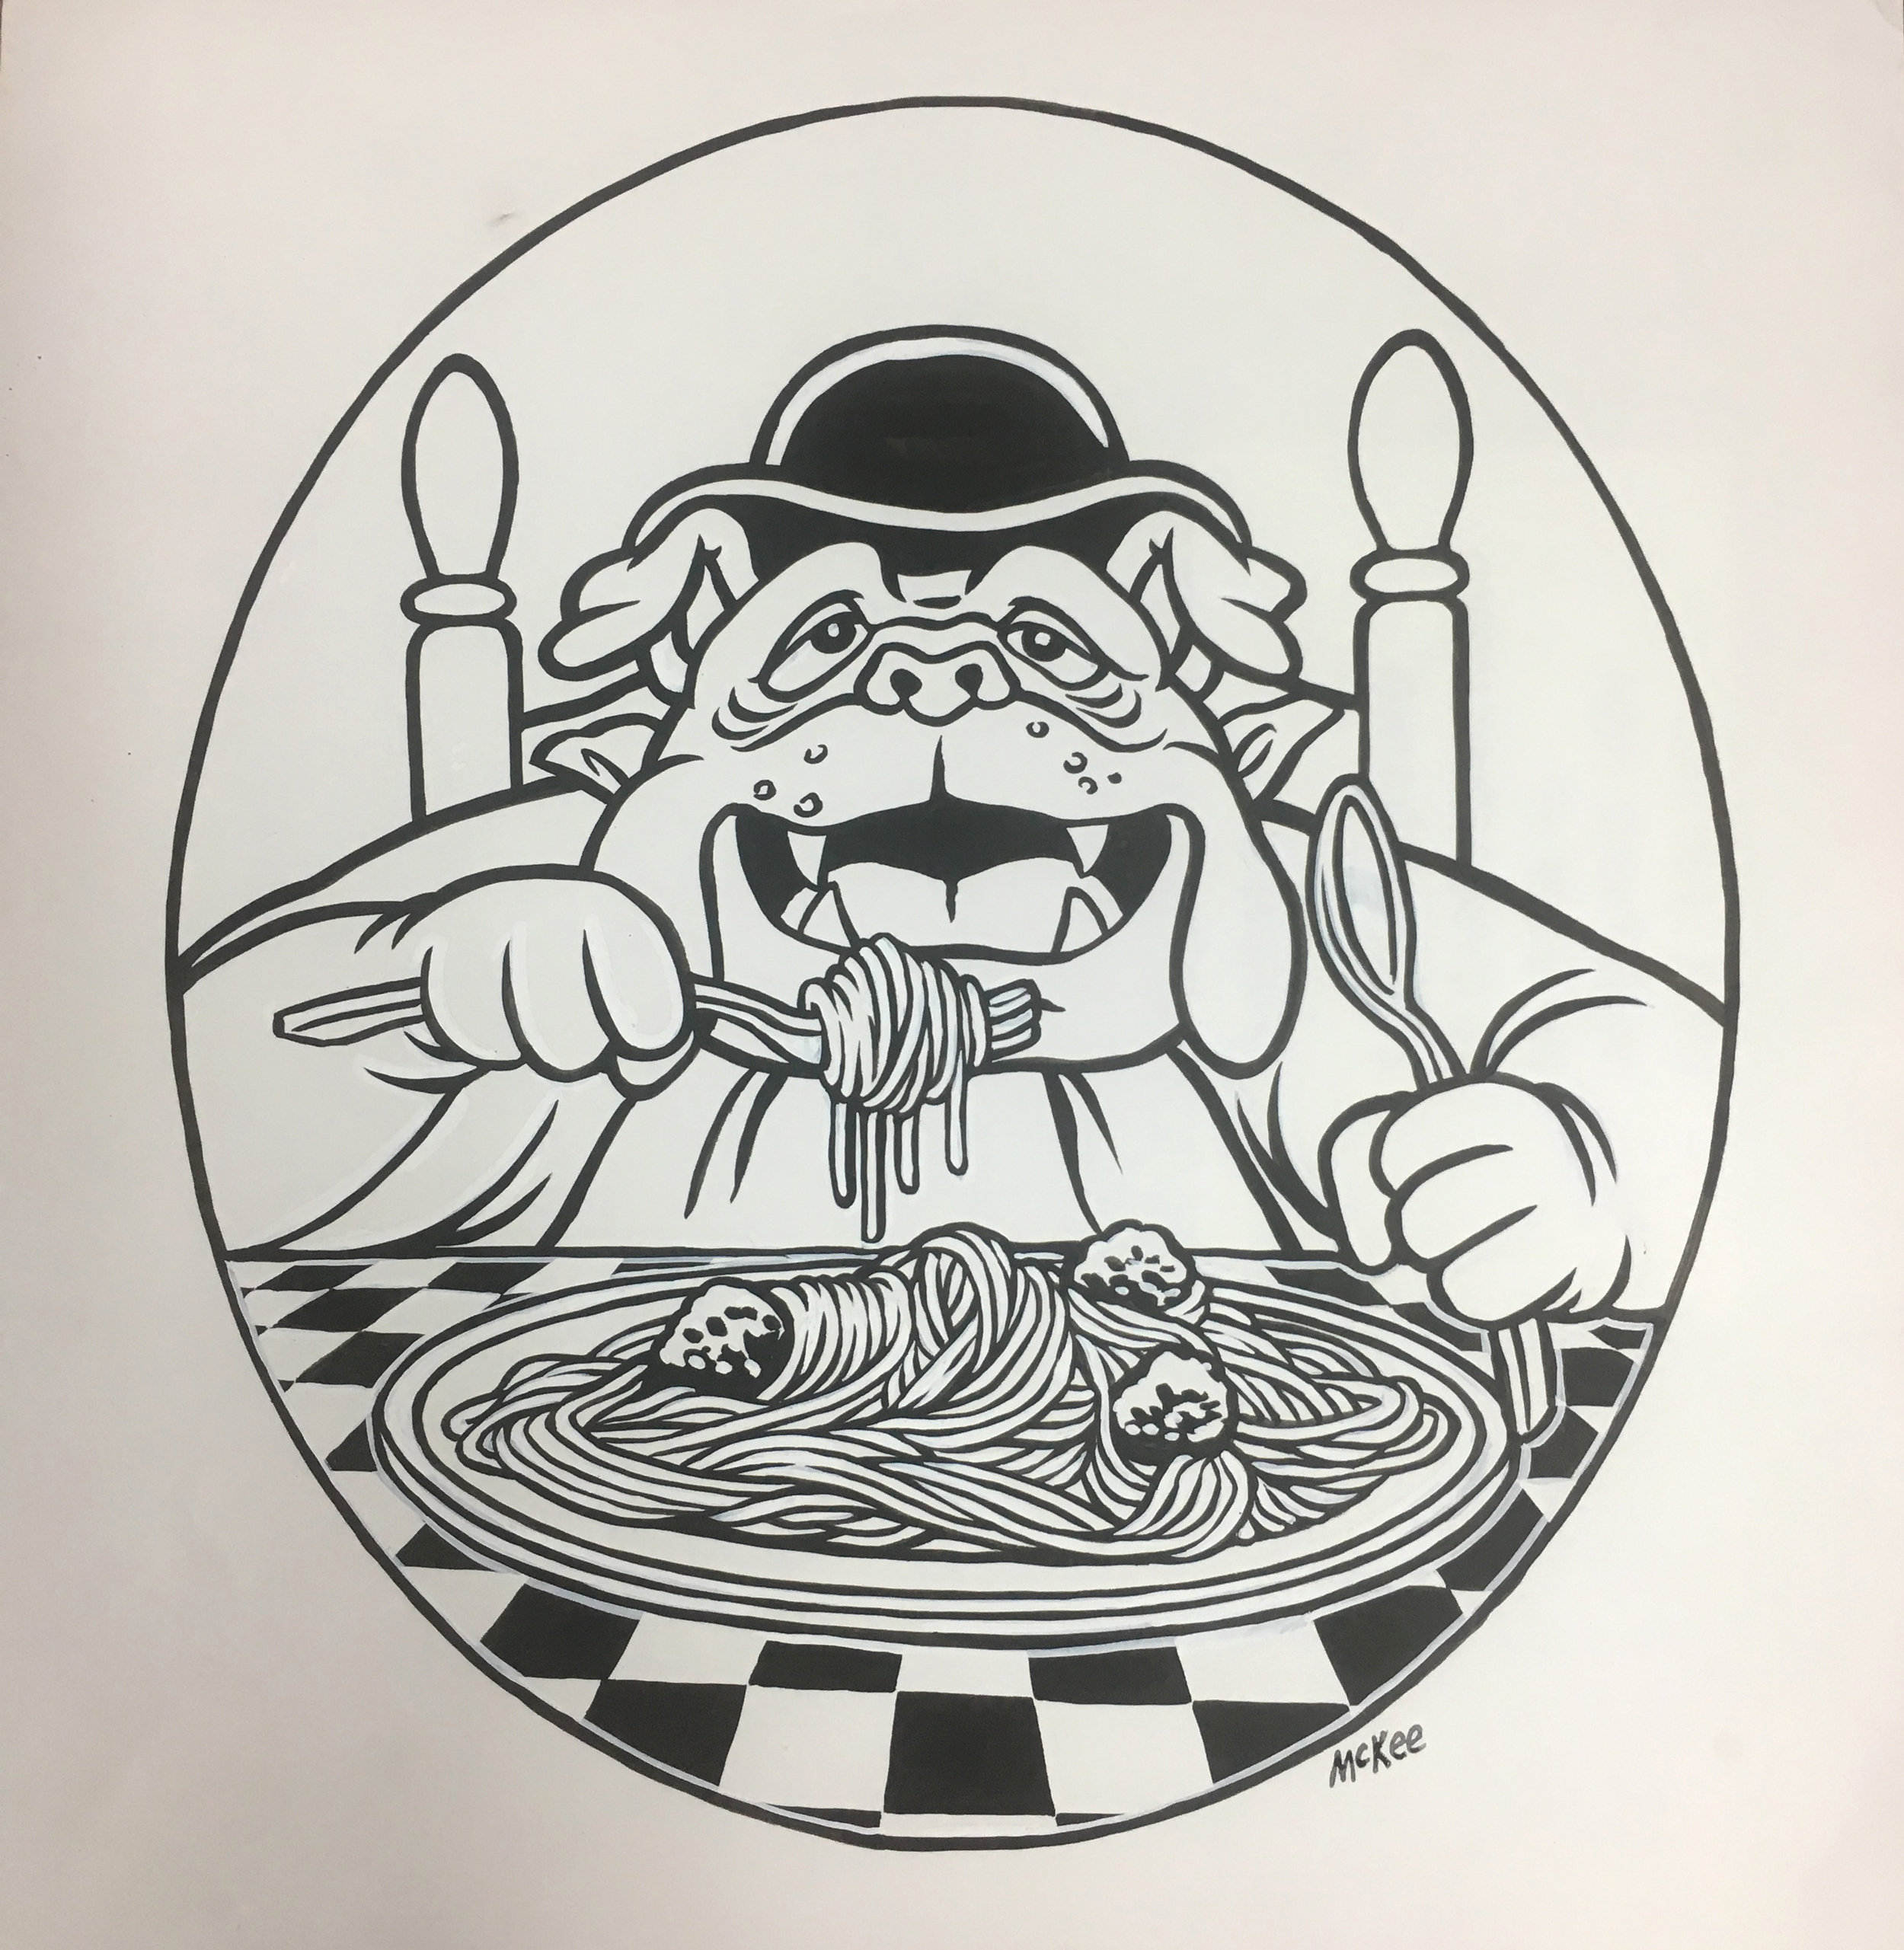 bulldog eating spaghetti / ink and goauche on paper / 1996